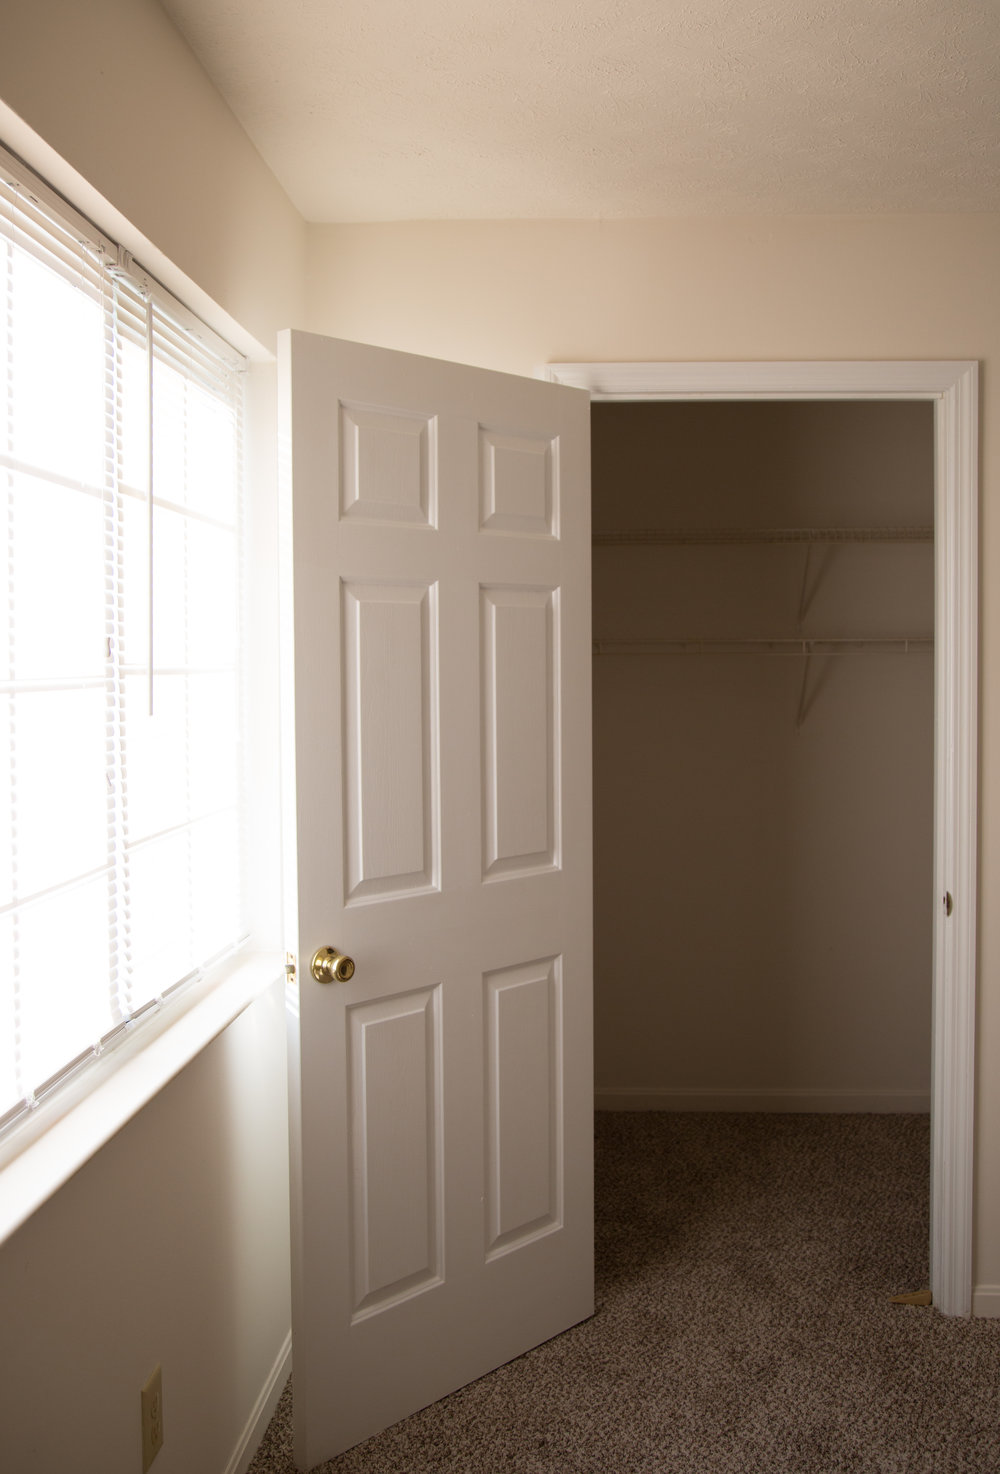 Second Bedroom Walk In Closet